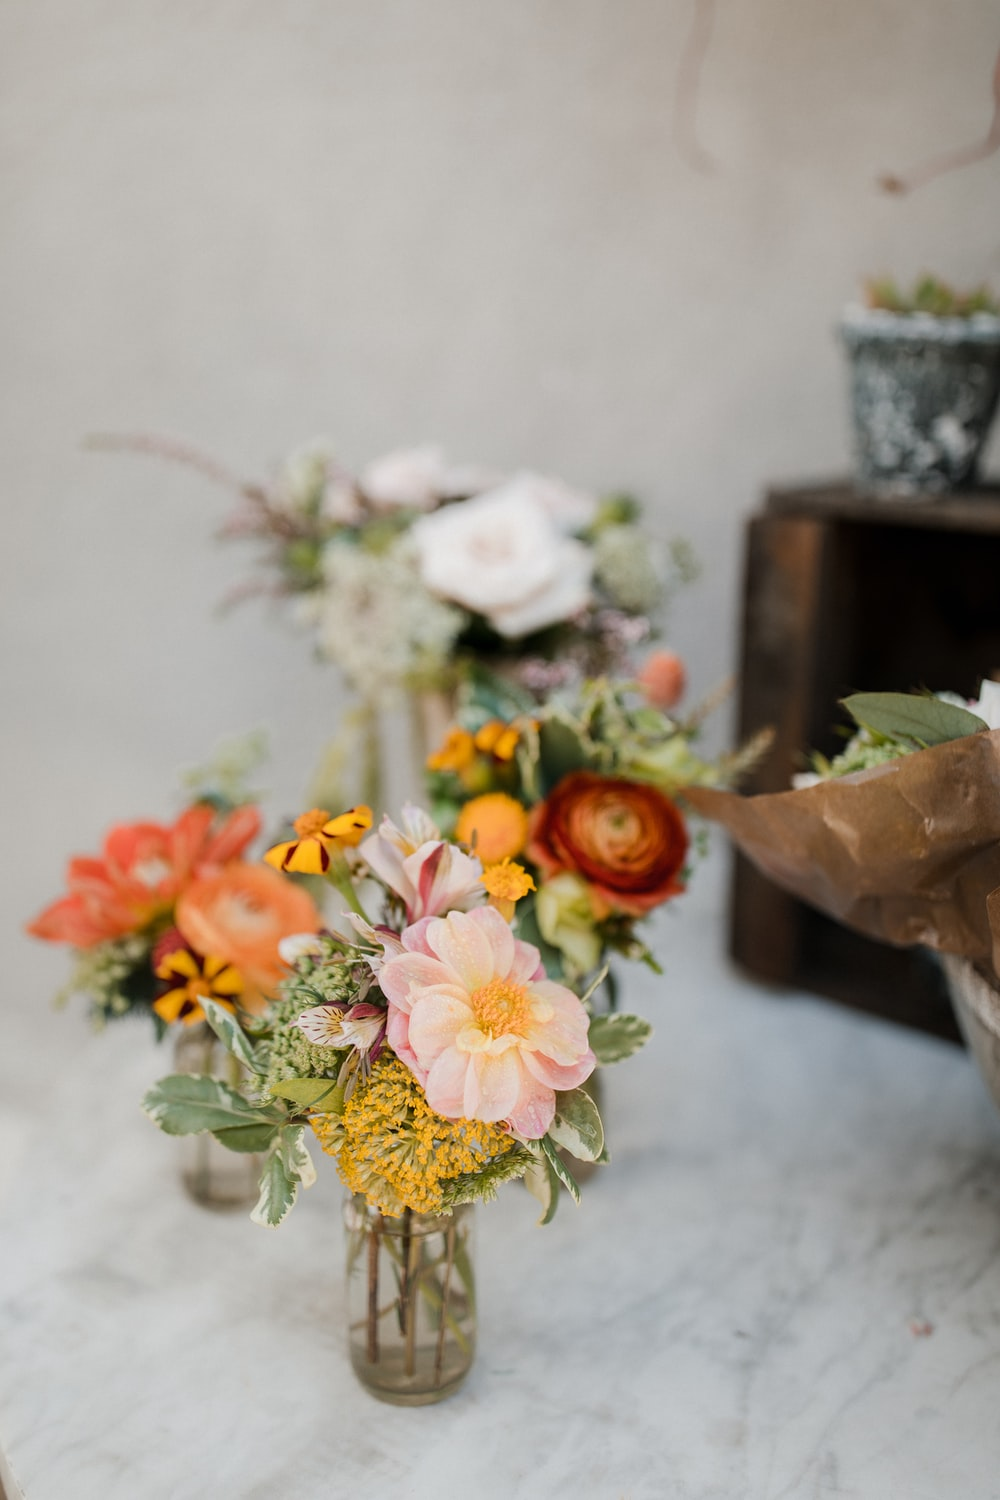 assorted flowers in glass vase